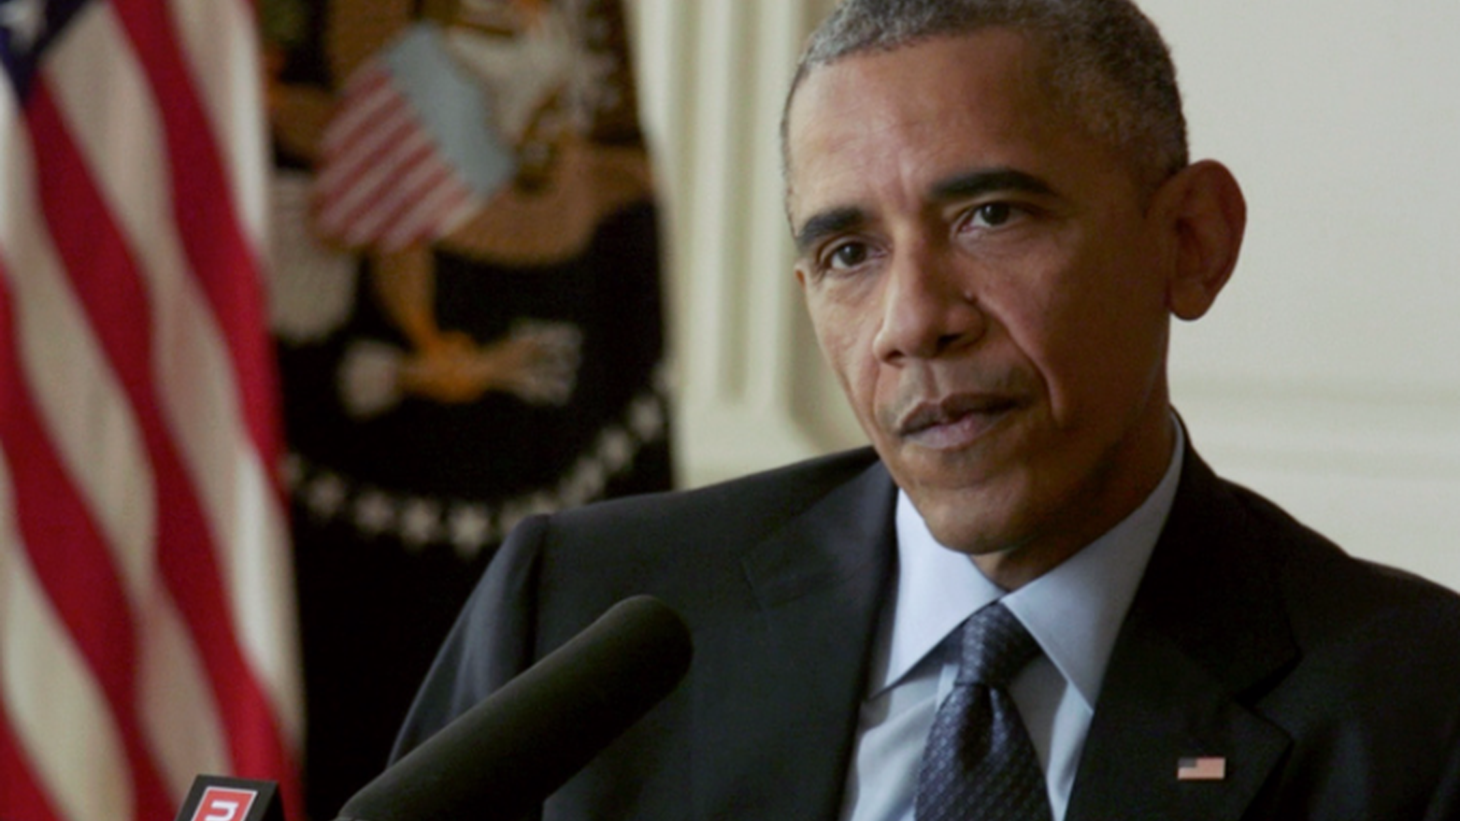 Steve Inskeep sits down with President Obama at the White House and asks the president how he thinks the country has changed during his presidency.